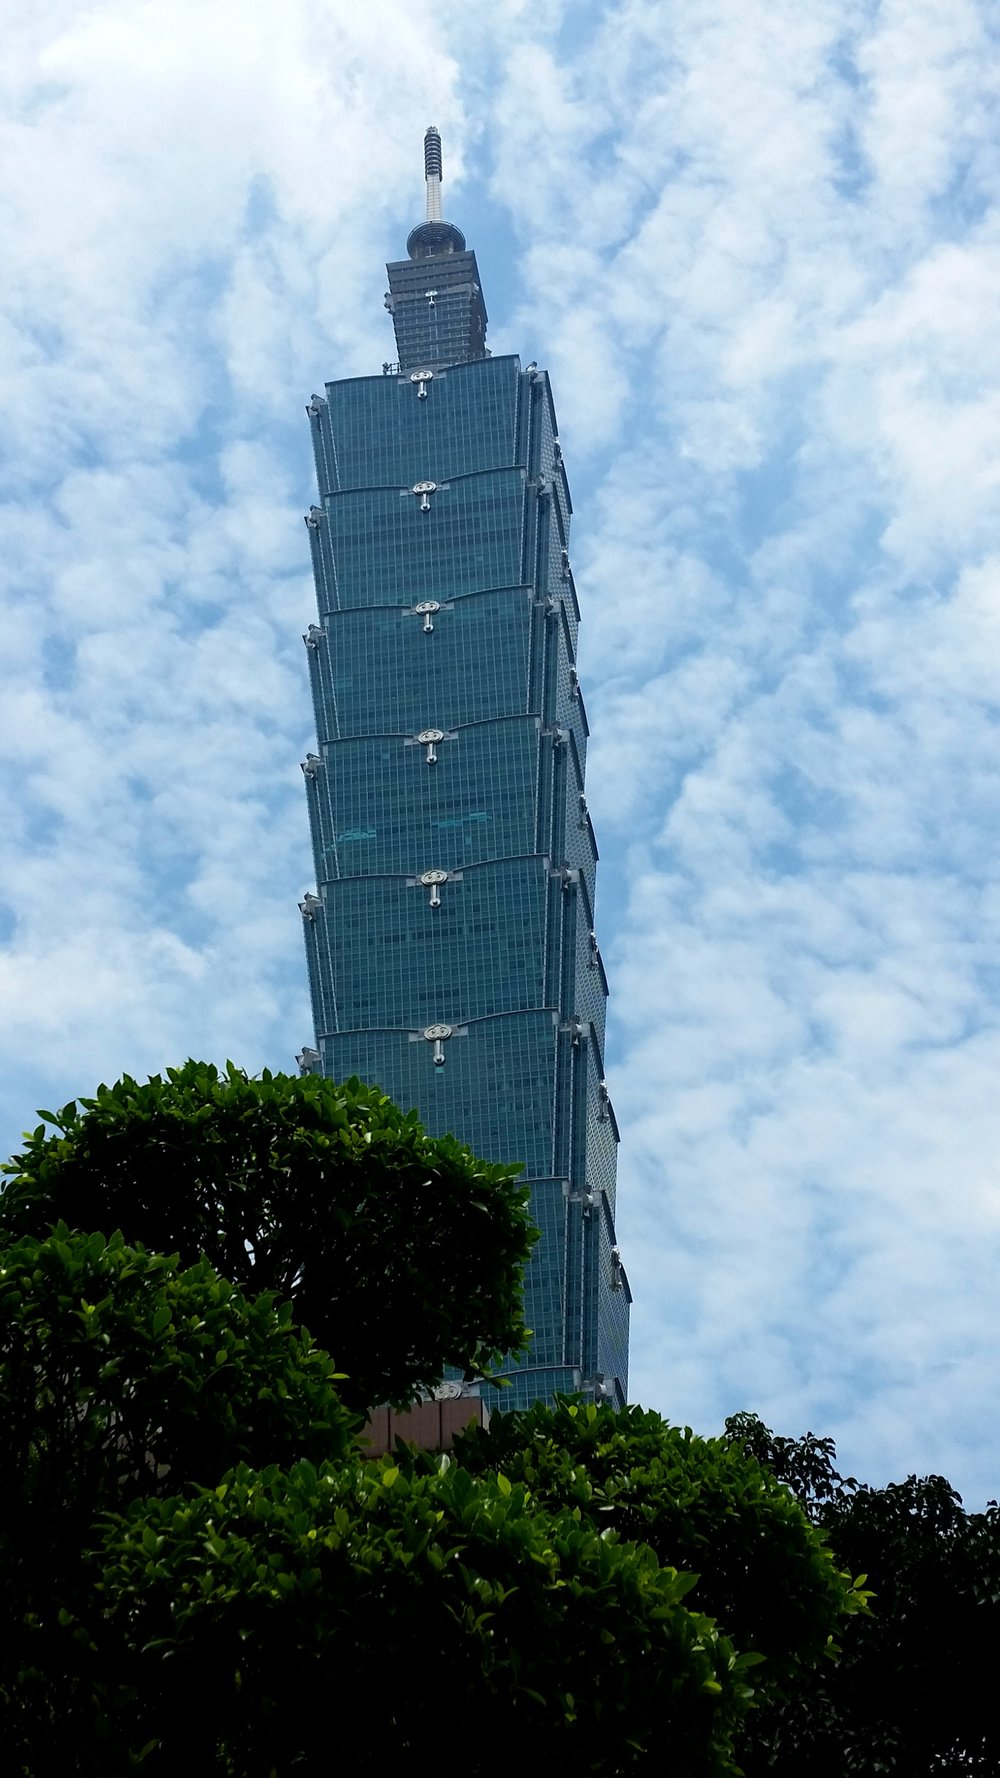 Taipei 101 was influenced by Pagodas, but looks more like a stack of Chinese takeaway boxes.